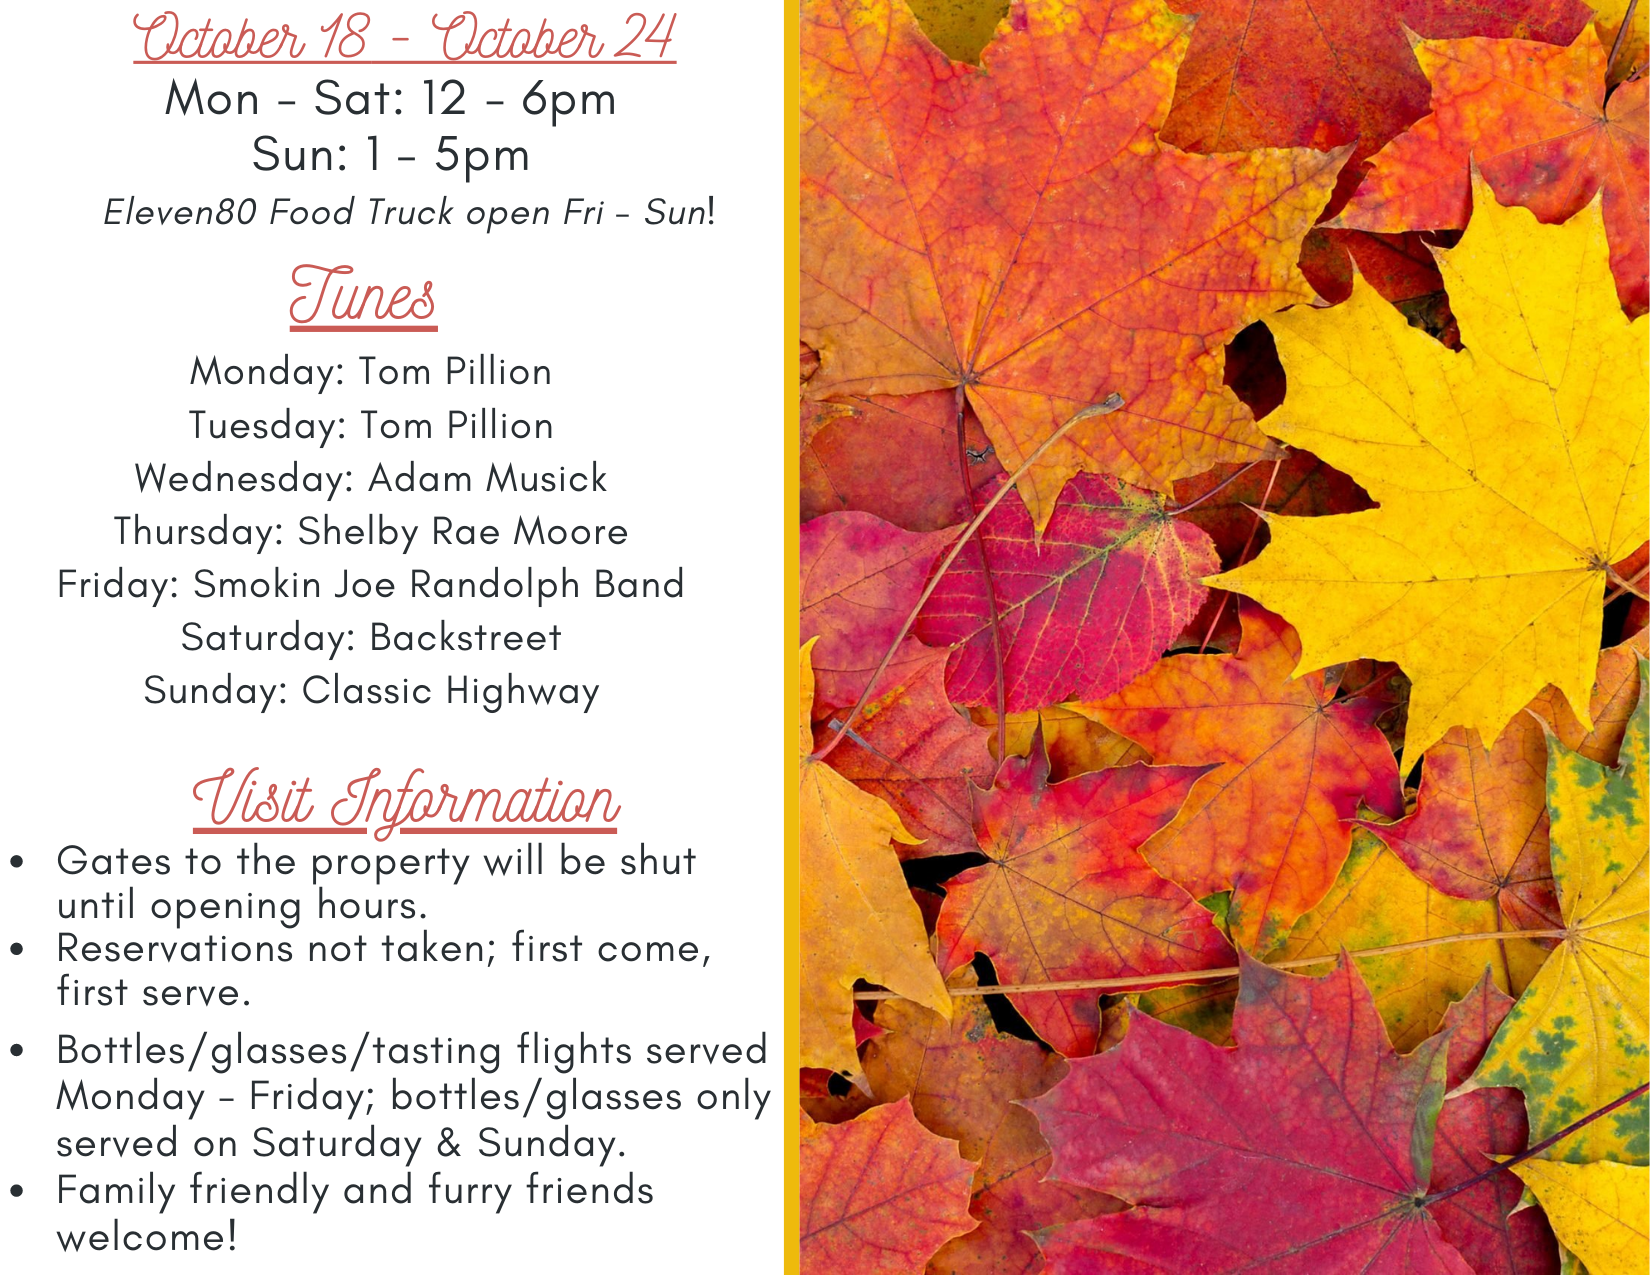 live music schedule at grandfather vineyard october 18-24